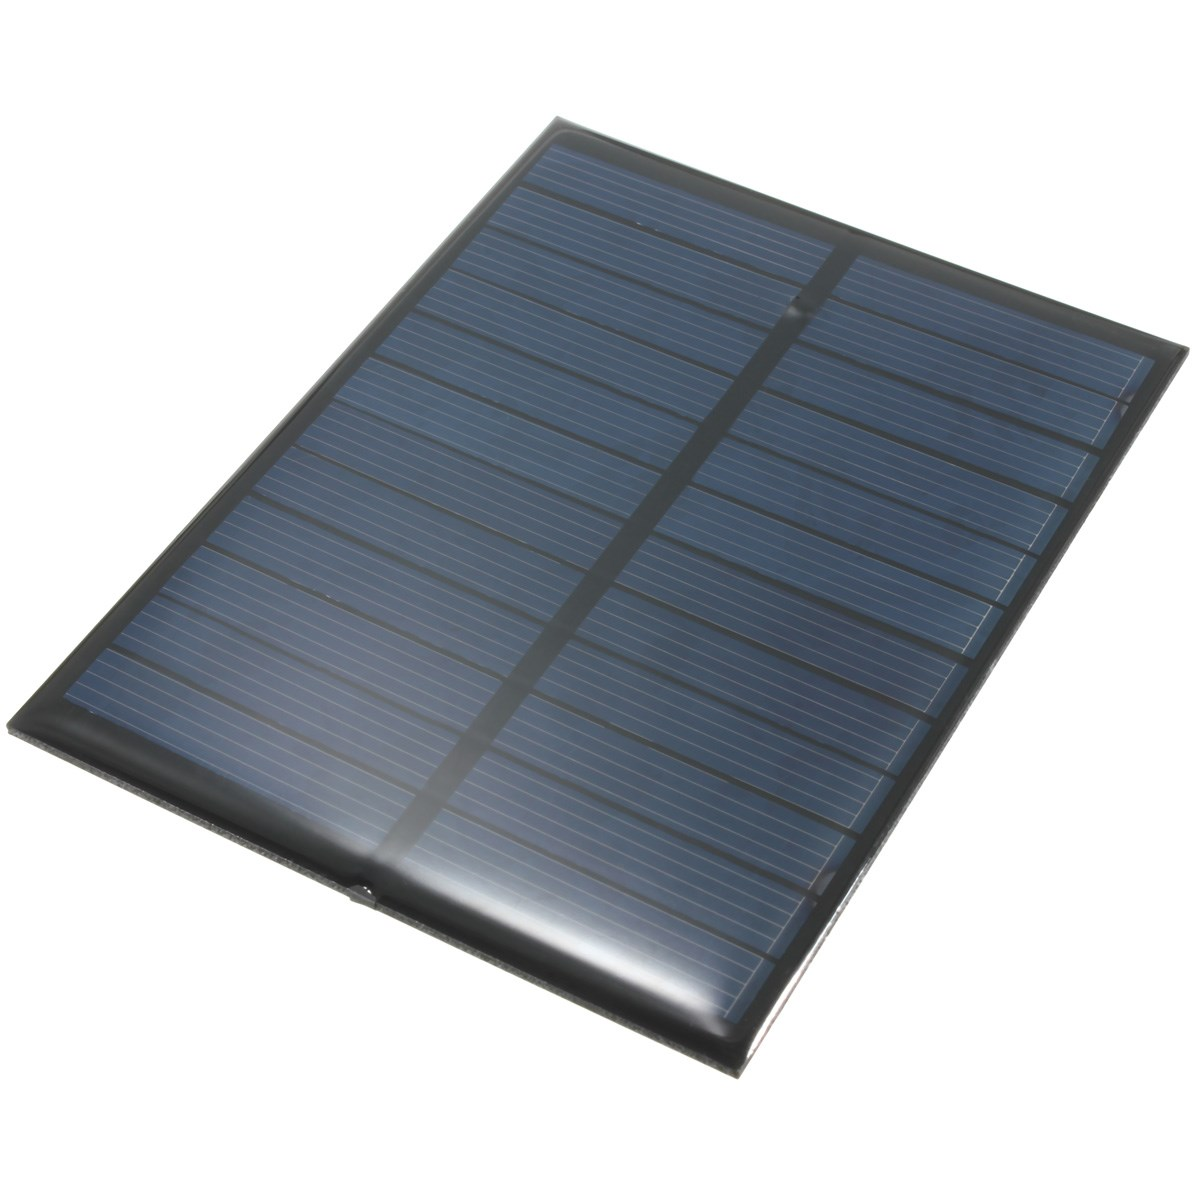 NEW 6V 1.1W 200mA Monocrystalline Silicon Epoxy Solar Panels Module Power Mini Solar Cells Portable Outdoor Charger 112x84mm(China (Mainland))